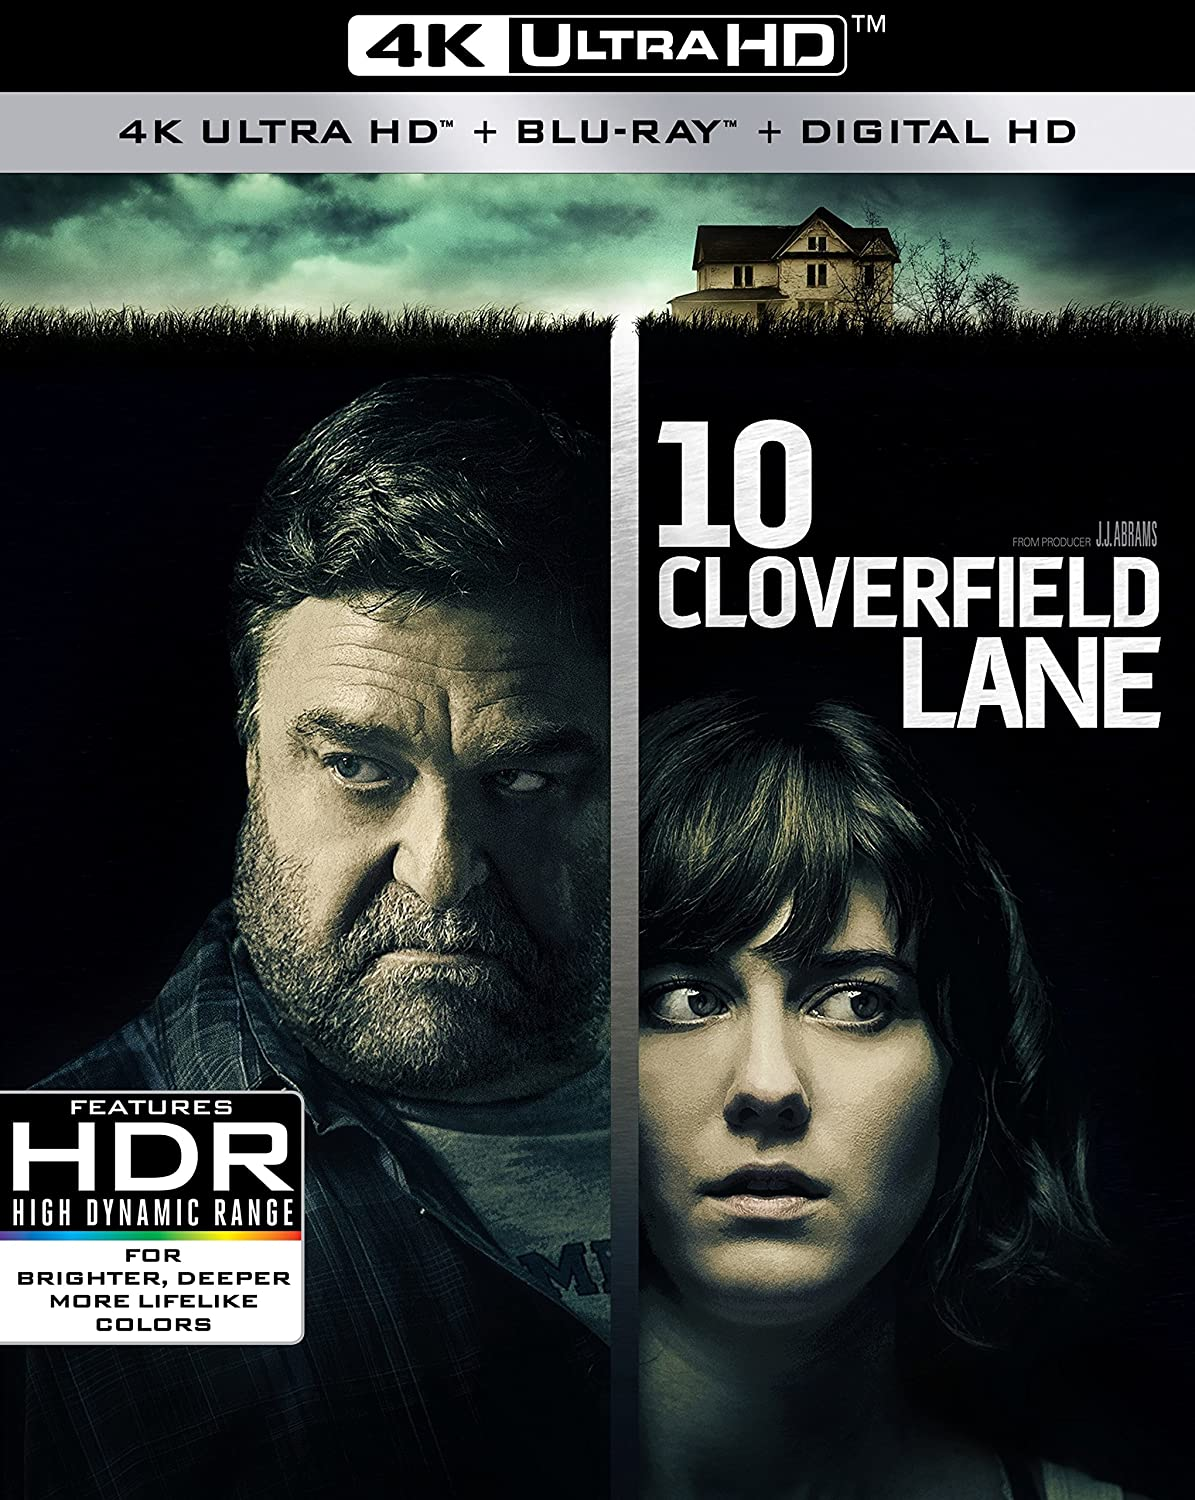 Amazon com: 10 Cloverfield Lane [Blu-ray]: 10 Cloverfield